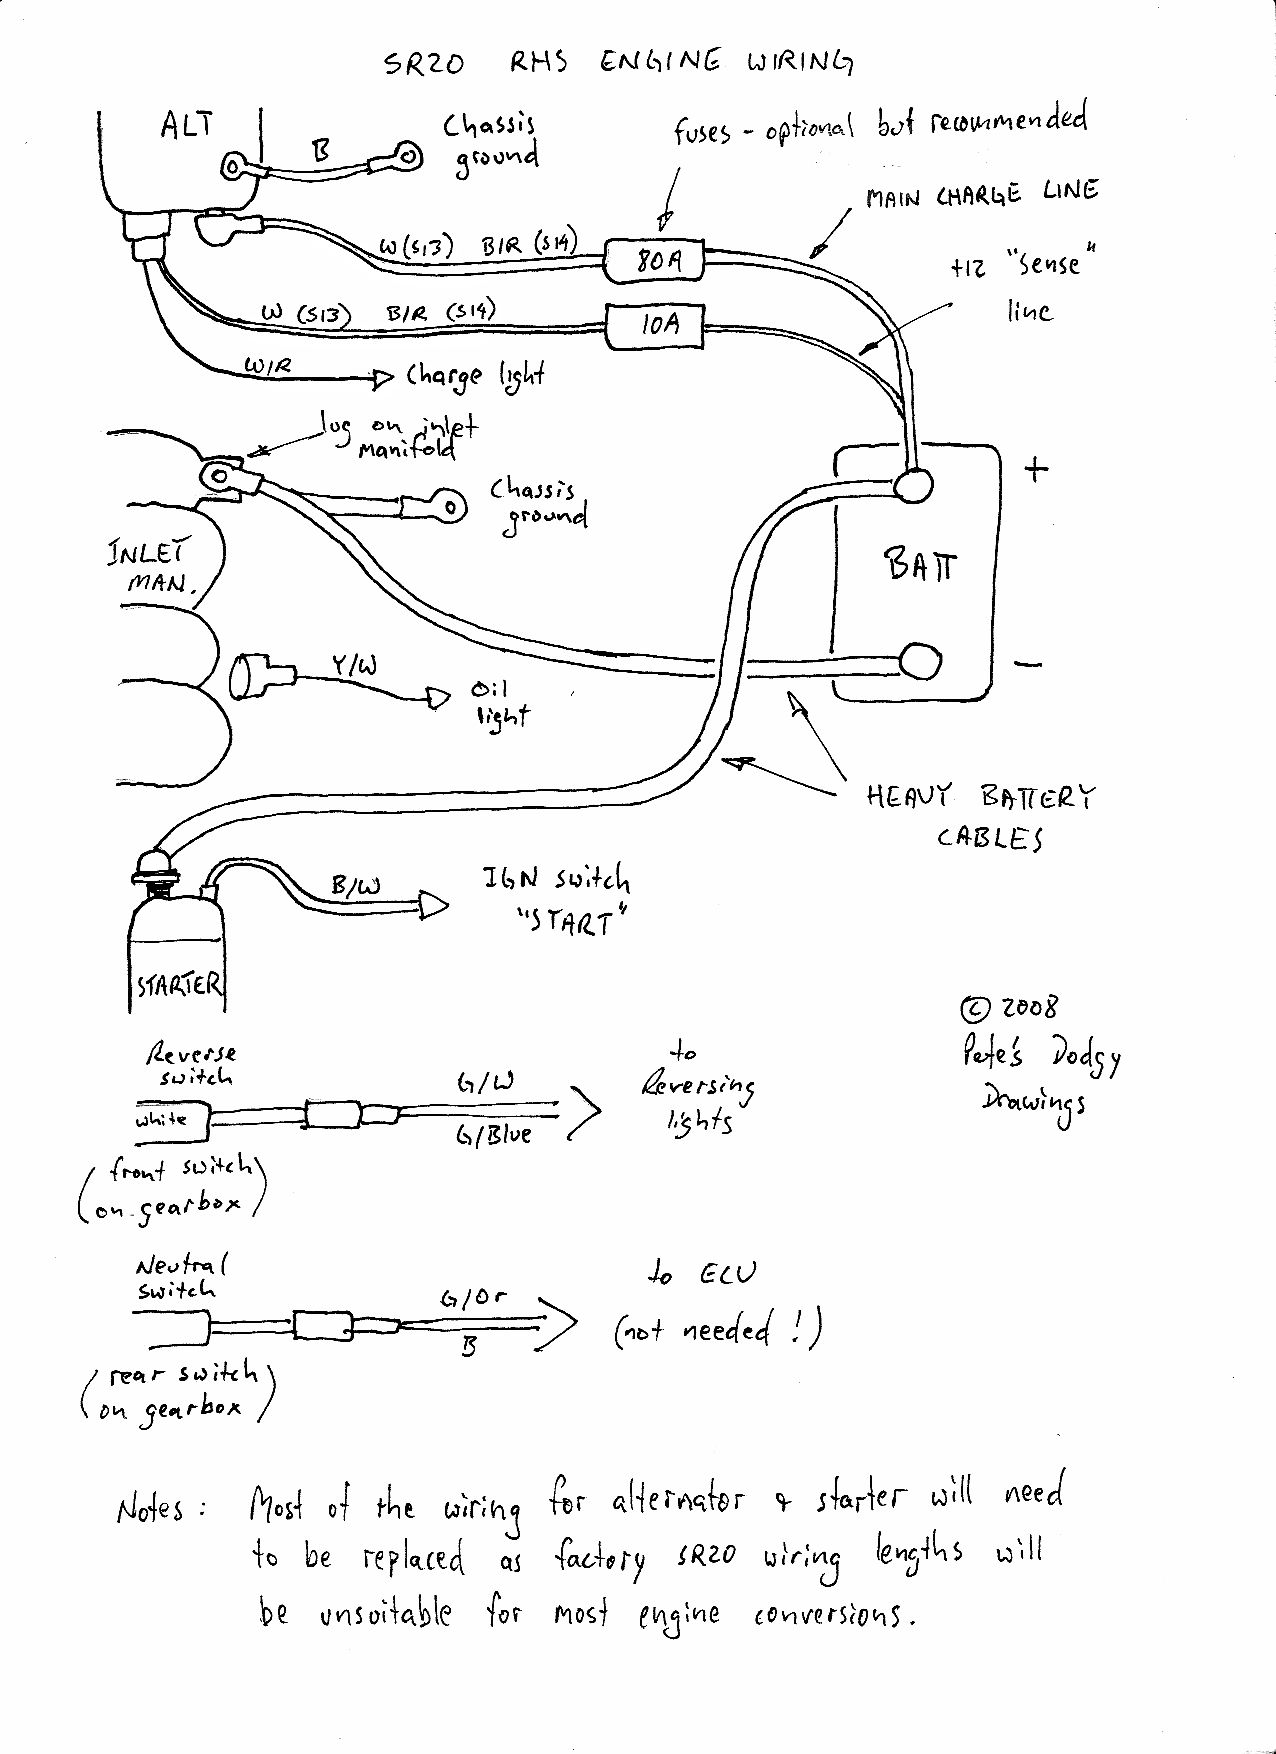 rhs_wiring sr20det wiring into 510 the 510 realm s14 sr20det wiring harness diagram at gsmx.co